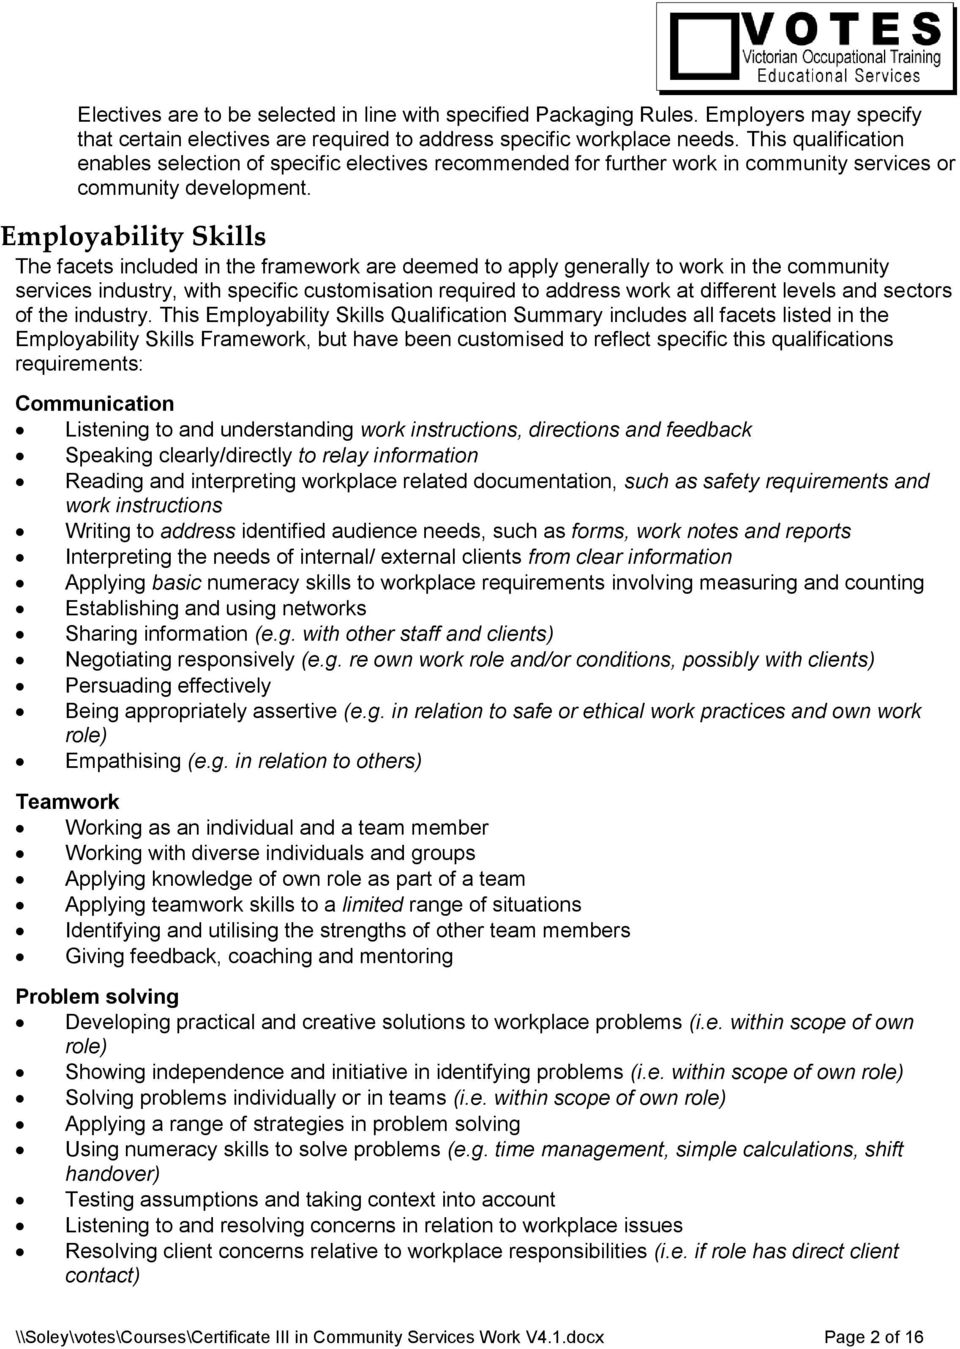 Employability Skills The facets included in the framework are deemed to apply generally to work in the community services industry, with specific customisation required to address work at different